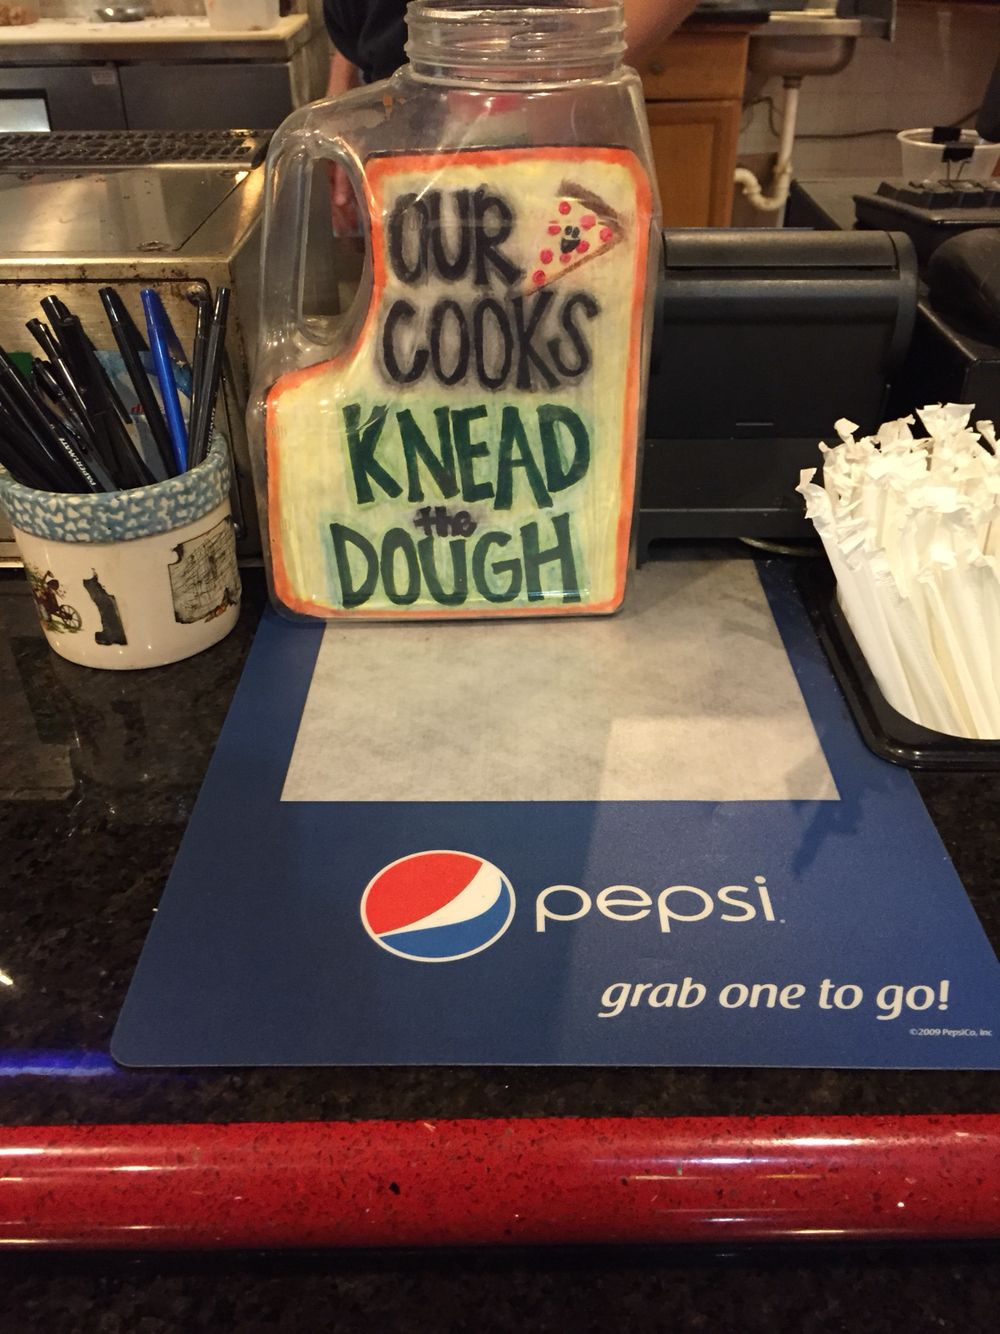 Funny Tip Jar Our Cooks Knead The Dough Pizza Tipjar Funnyideas Funny Tip Jars Tip Jars Funny Tips